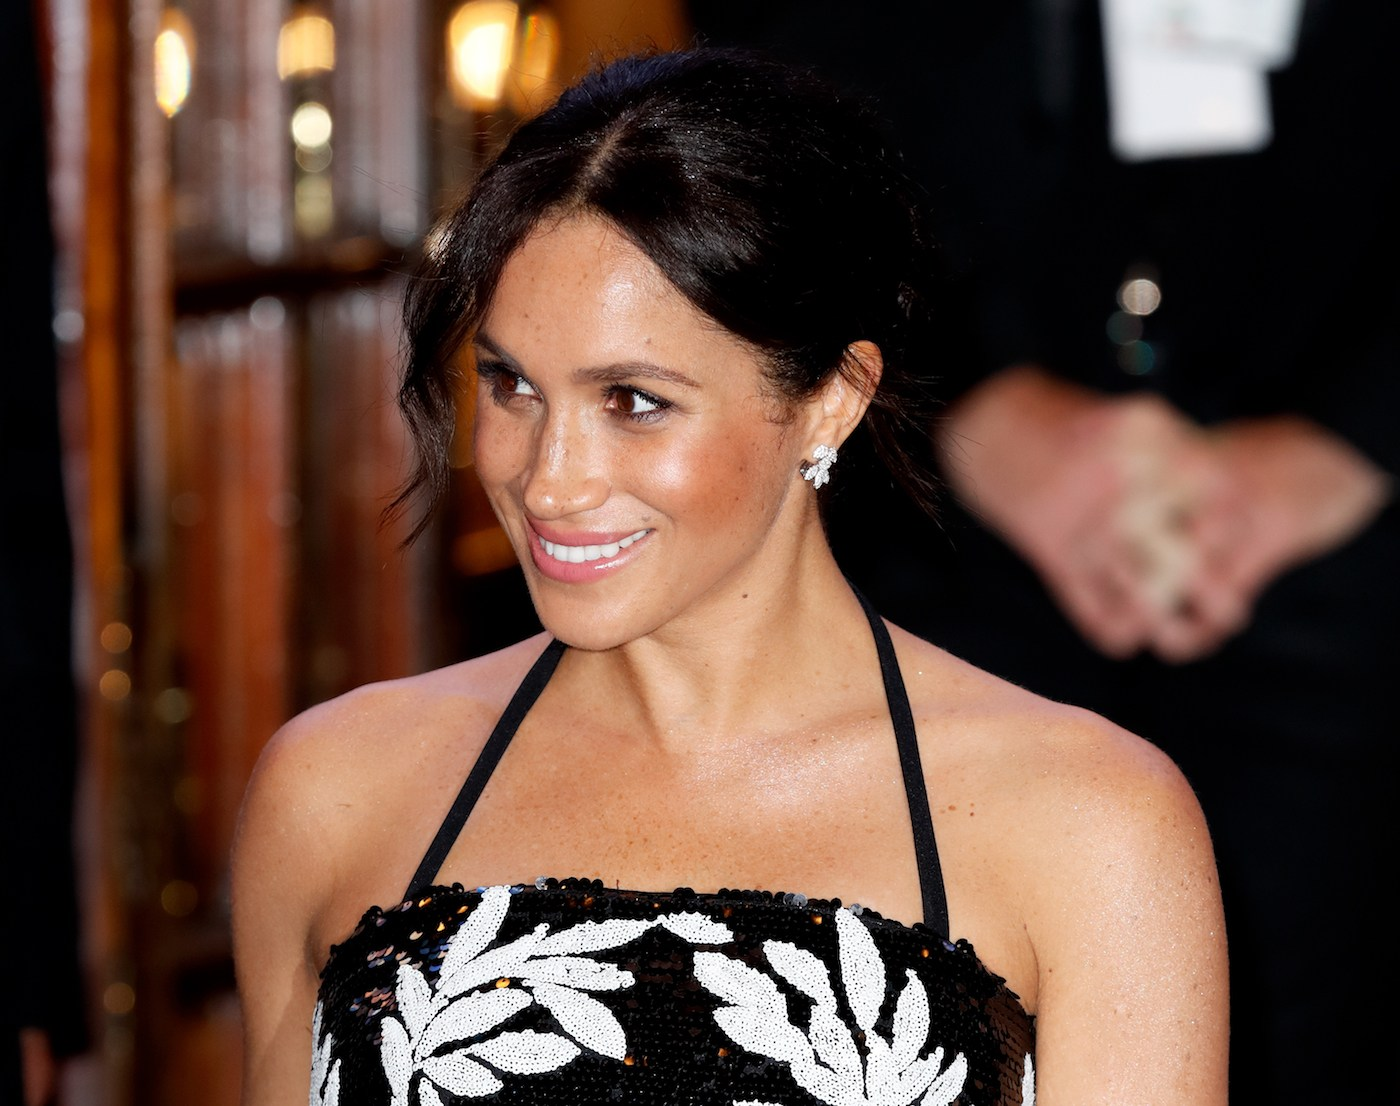 Thumbnail for I saw Meghan Markle wearing body shimmer, so now I'm buying body shimmer